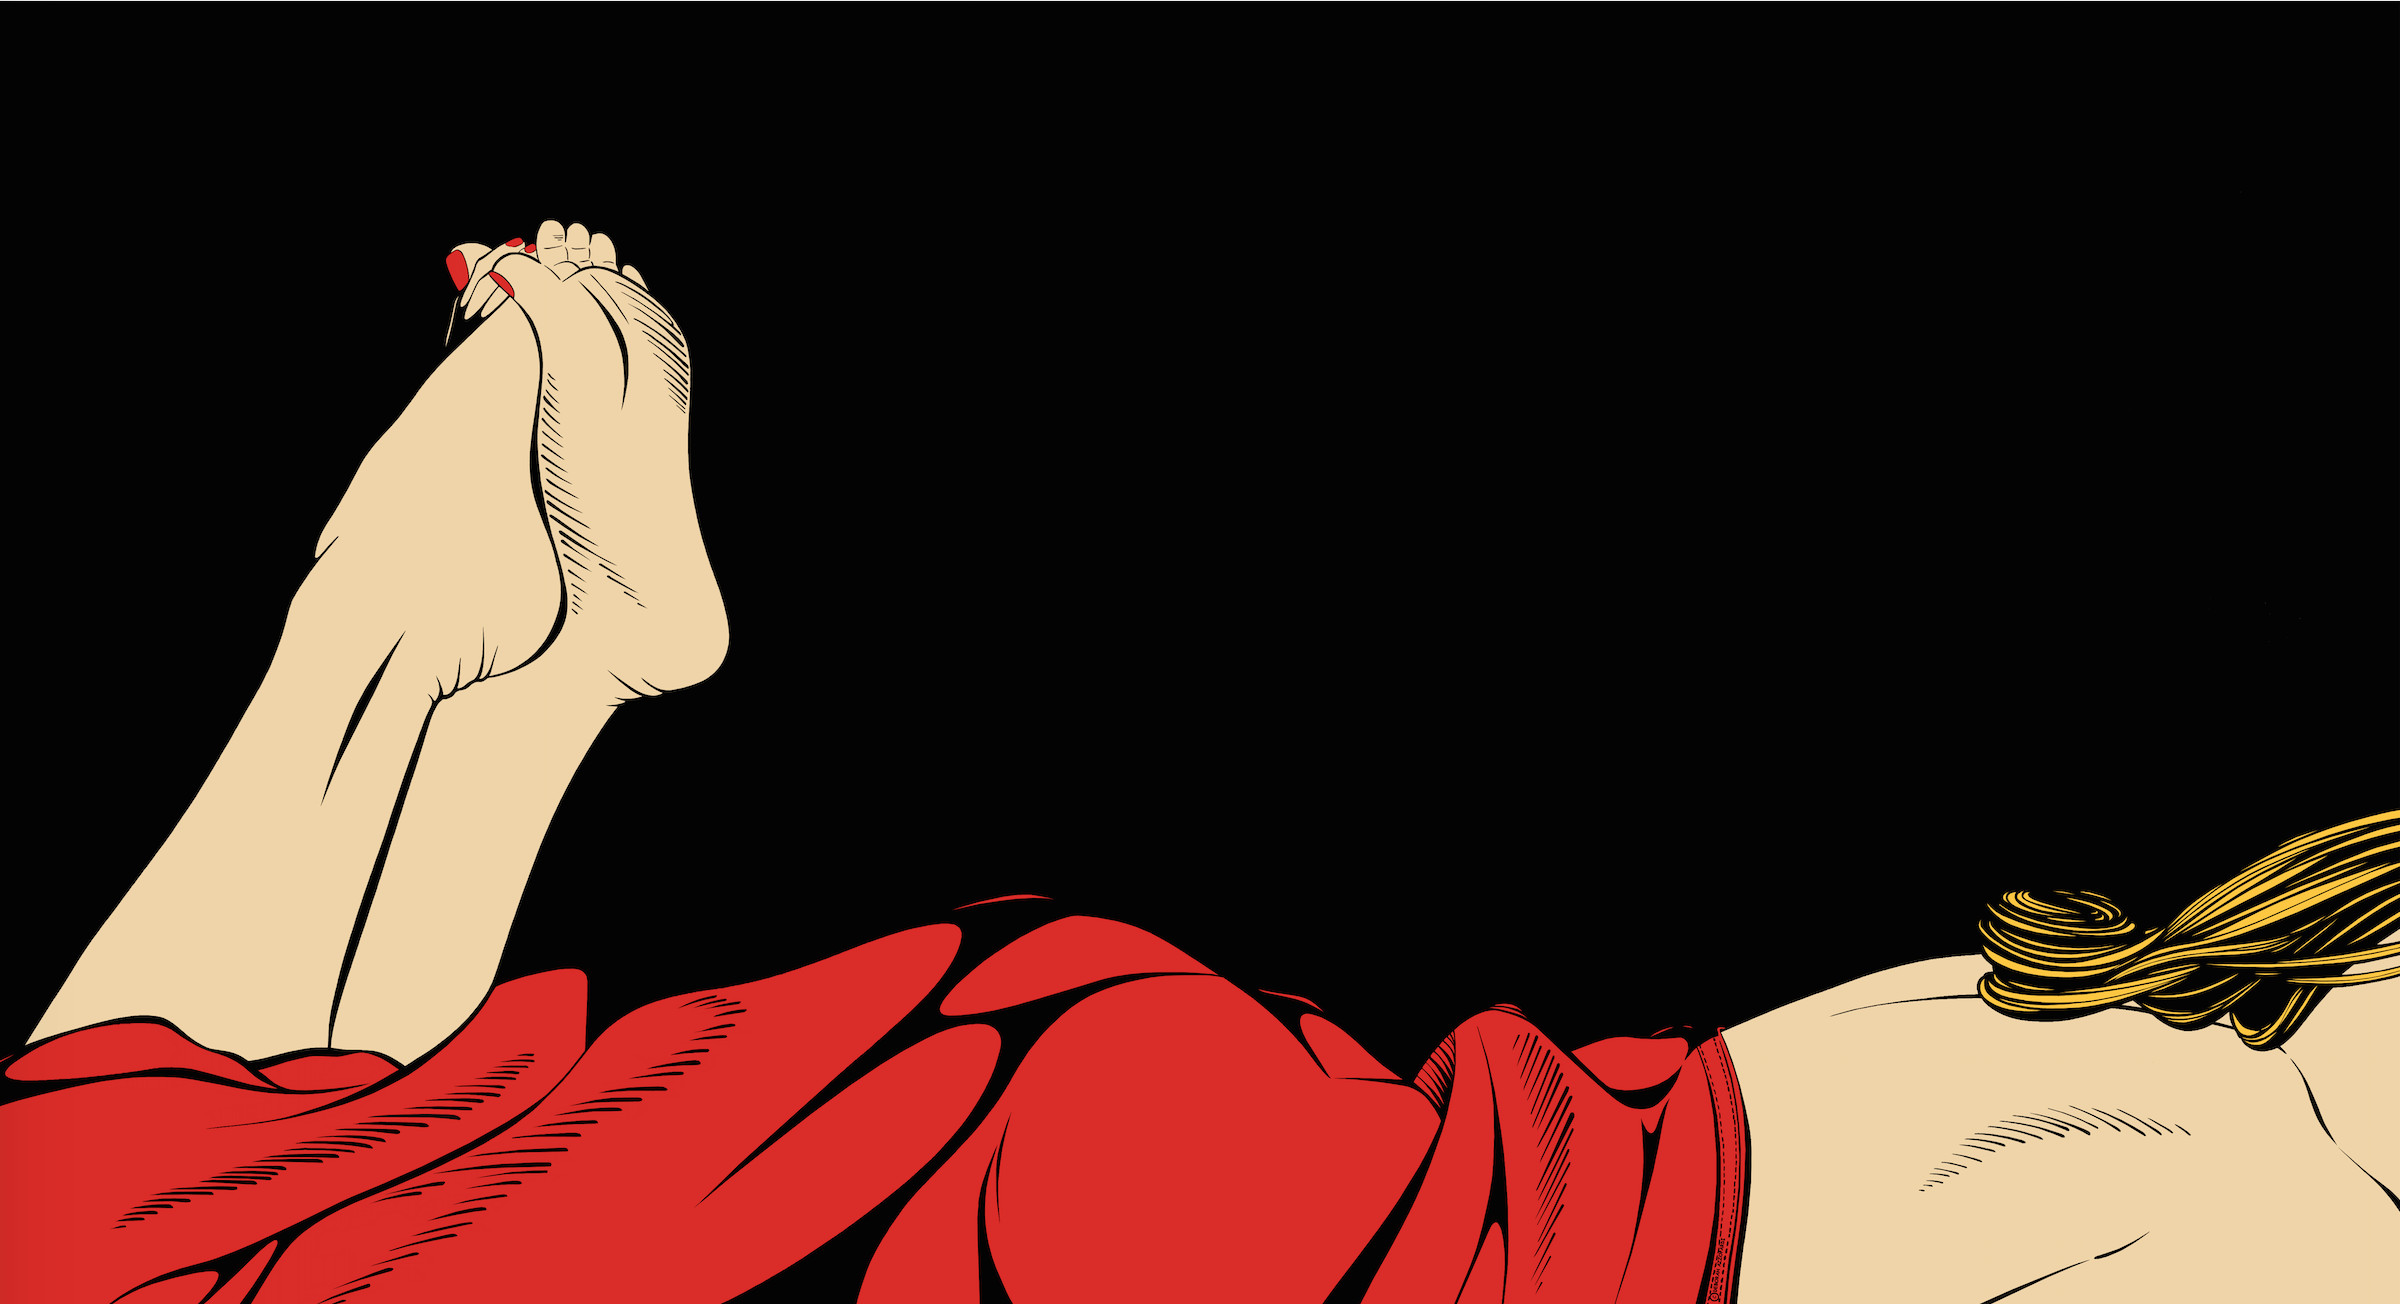 """<span class=""""link fancybox-details-link""""><a href=""""/exhibitions/47/works/artworks552/"""">View Detail Page</a></span><div class=""""artist""""><strong>Deborah Azzopardi</strong></div><div class=""""title""""><em>Relaxing</em>, 2007</div><div class=""""medium"""">Acrylic on Board</div><div class=""""dimensions"""">66 x 121.9 cm<br>26 x 48 in.</div>"""